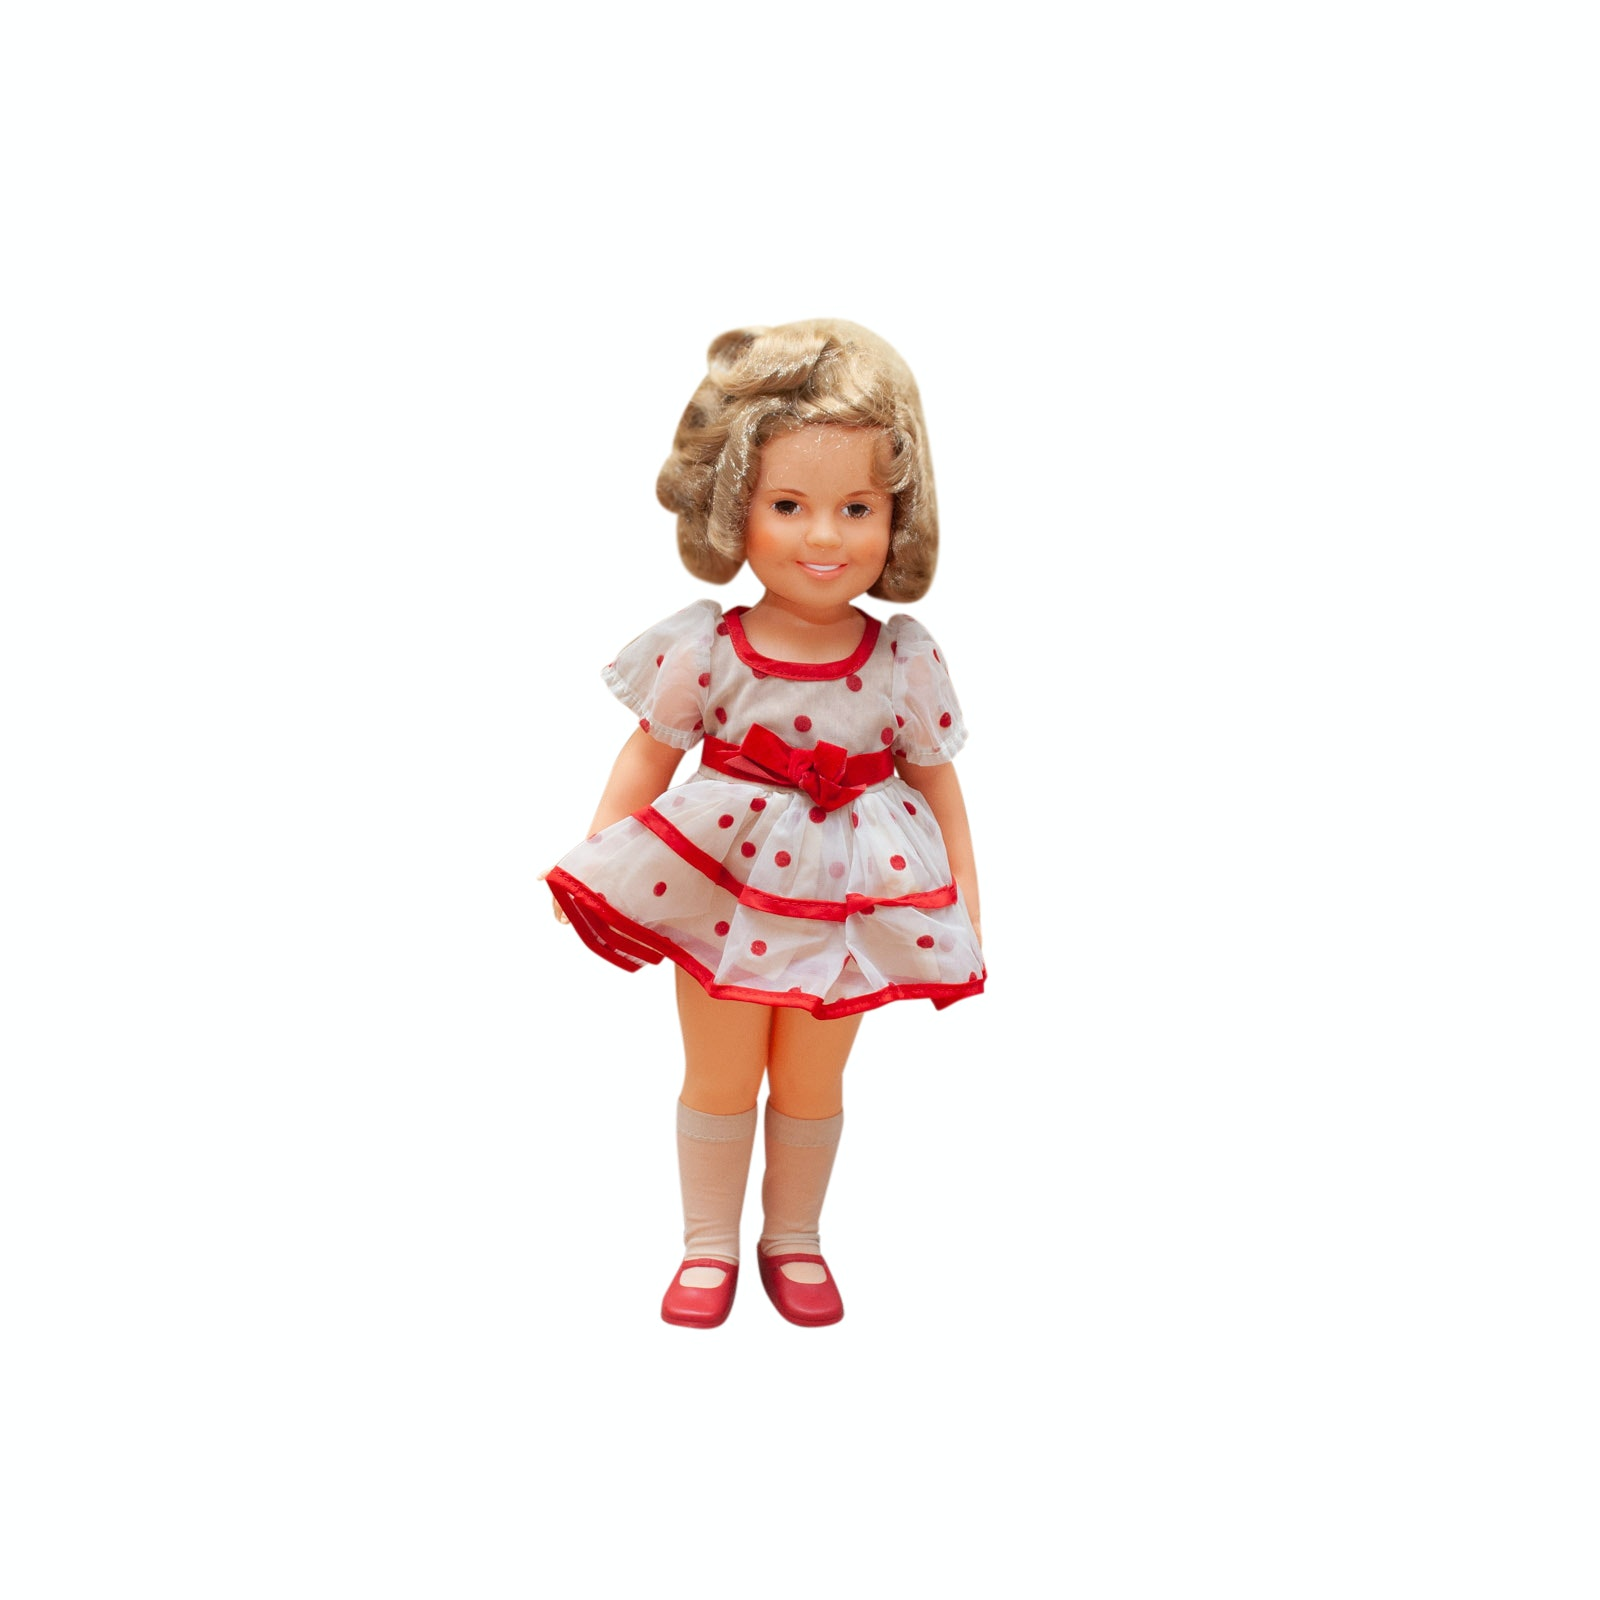 Vintage 1970s Shirley Temple Doll by Ideal